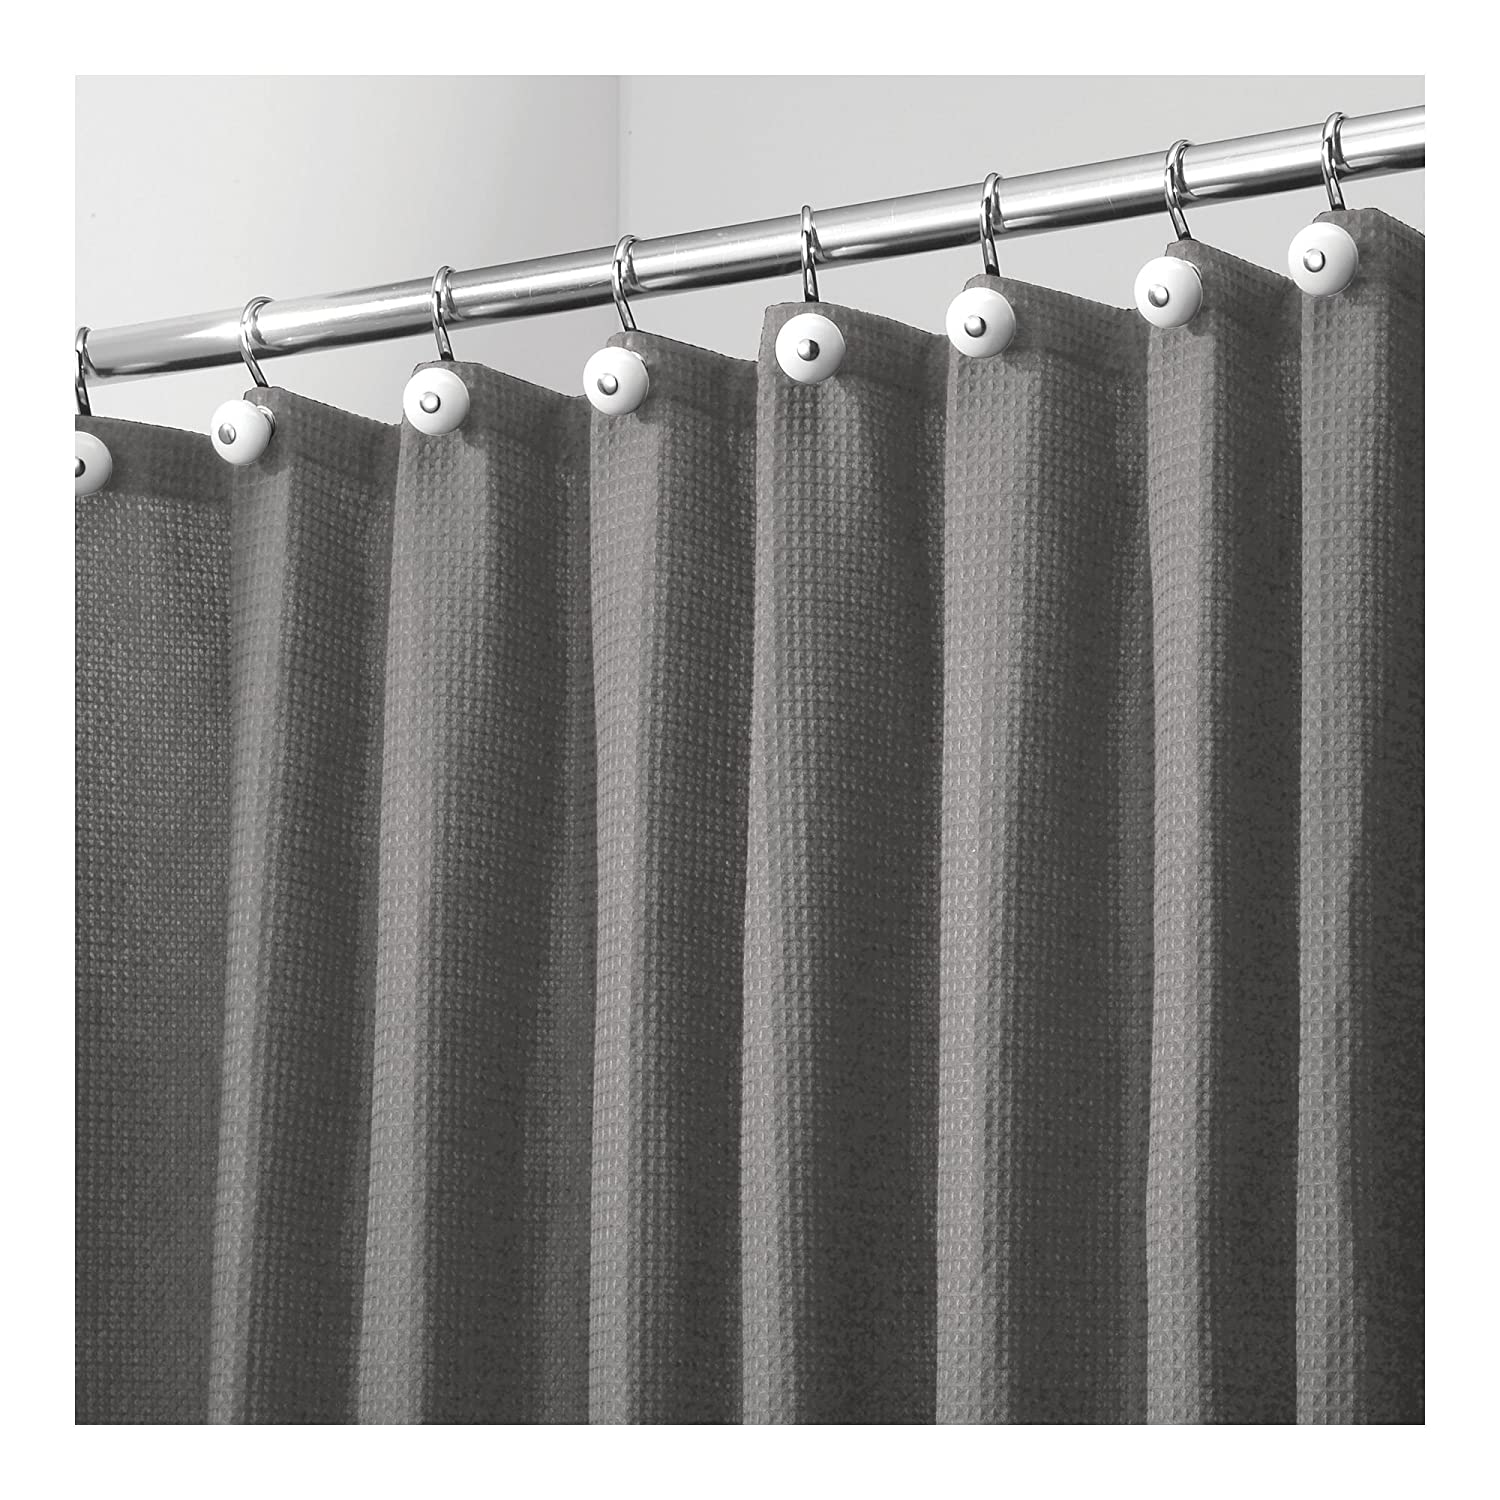 Amazon com mdesign hotel quality polyester cotton blend fabric shower curtain rustproof metal grommets waffle weave for bathroom showers and bathtubs